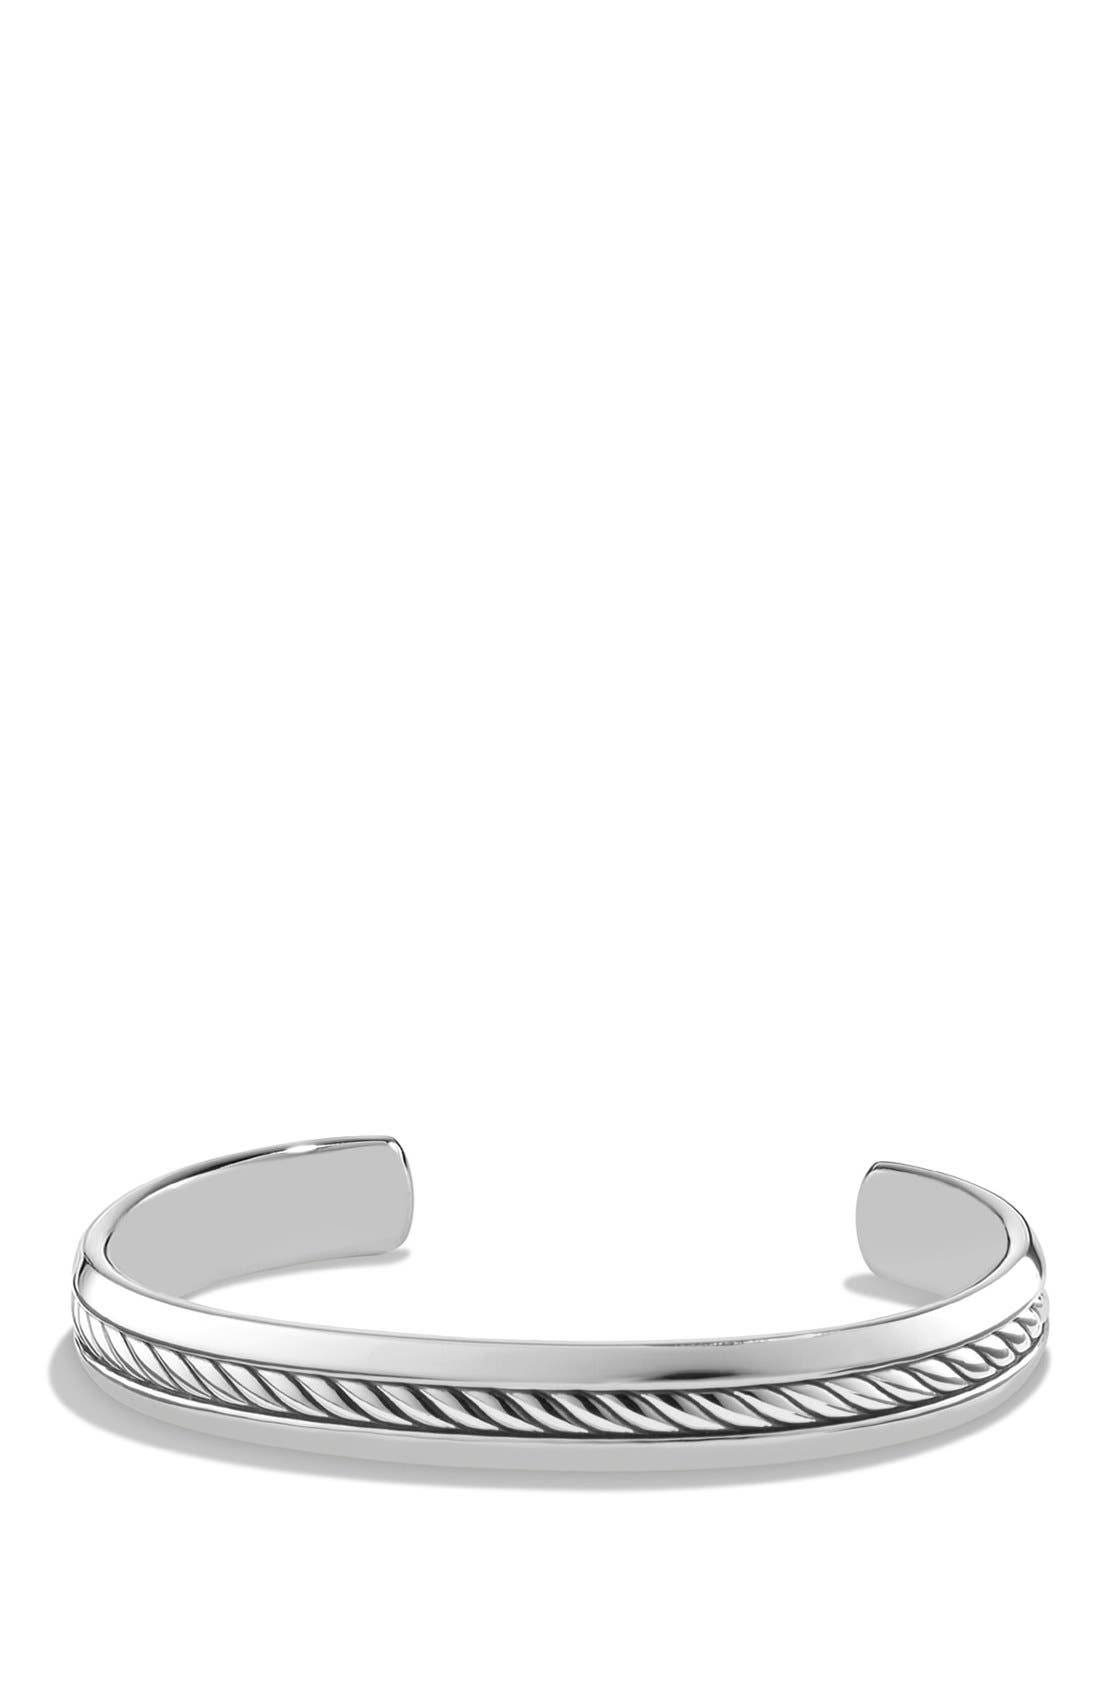 Alternate Image 1 Selected - David Yurman 'Cable Classics' Chain Bracelet